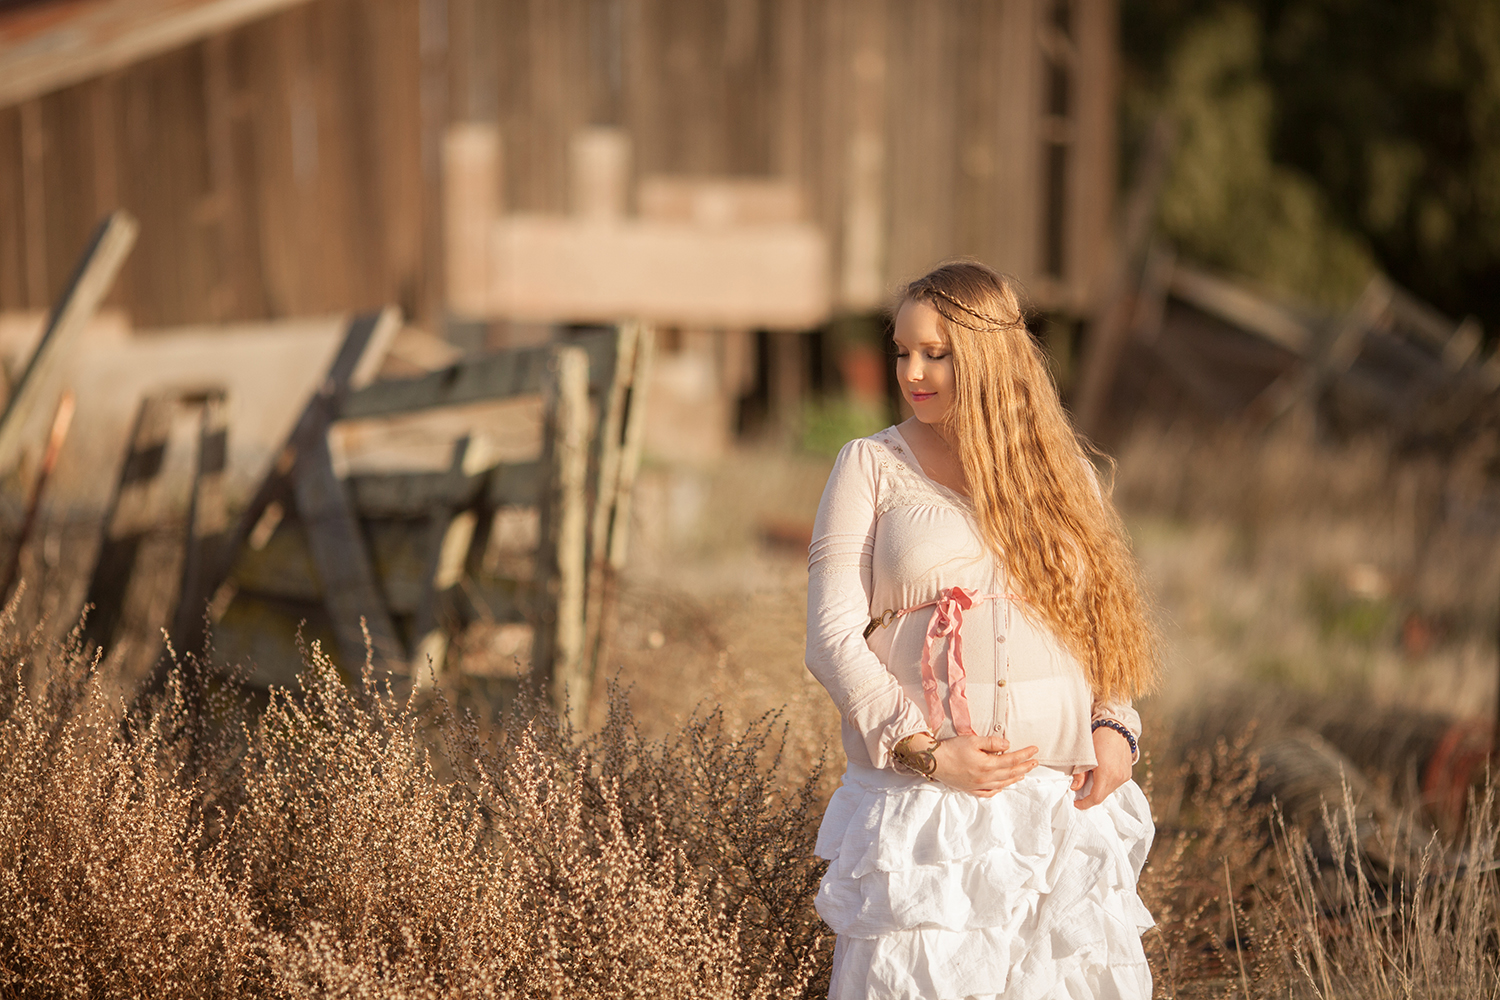 Dena_Rooney_Maternity_Portraits_042.jpg